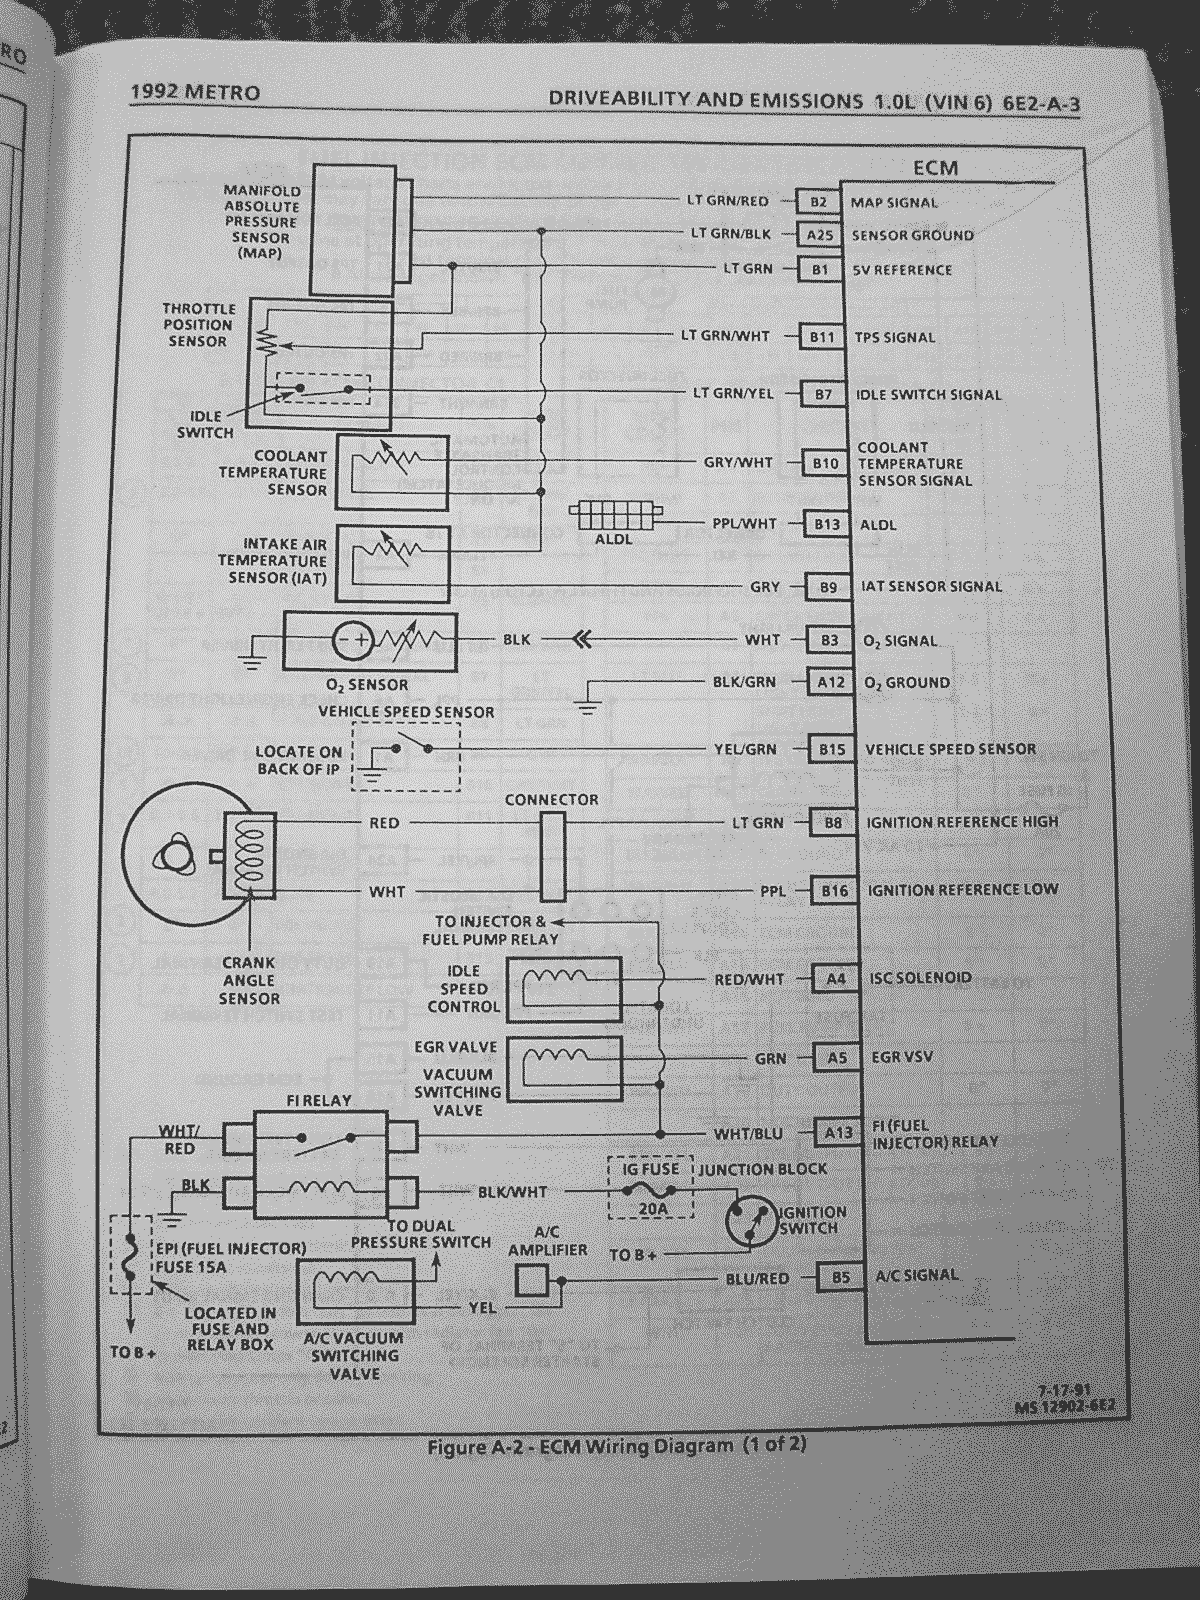 6e2 a 3 geo metro and suzuki swift wiring diagrams metroxfi com diagram of a fuse box on a geo metro 91 at bakdesigns.co